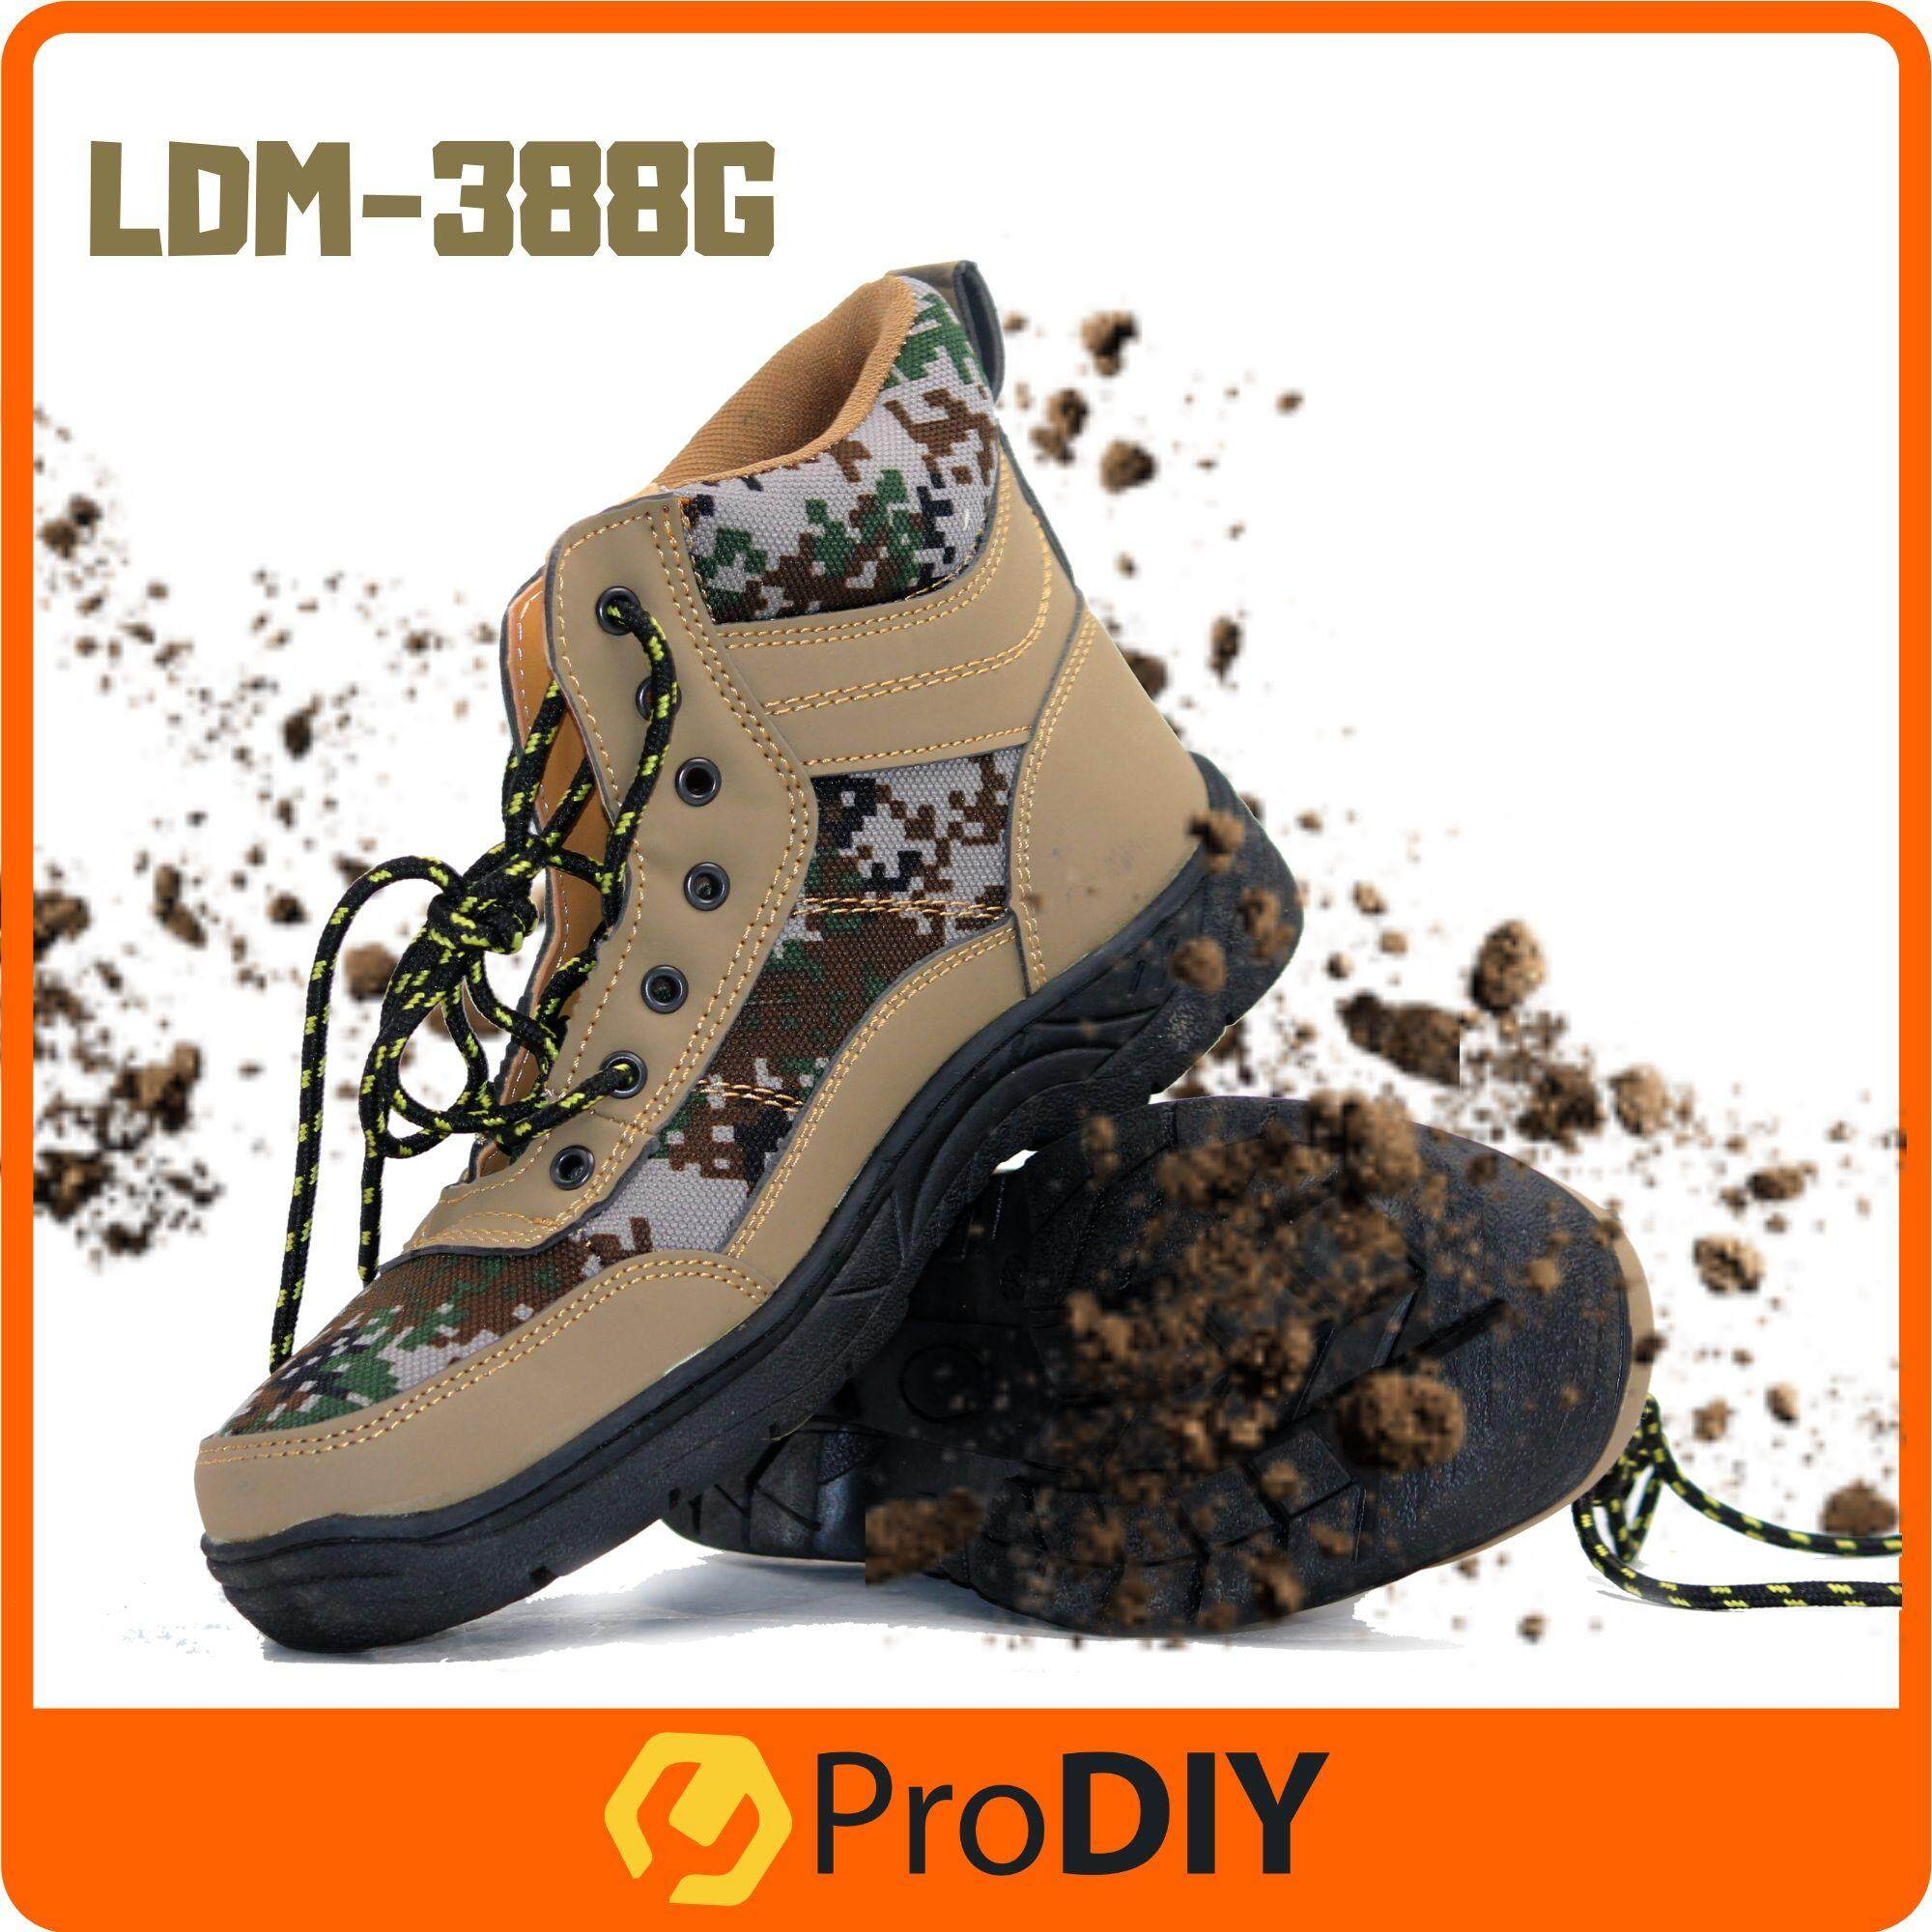 SAFETY SHOES UNISEX FASHION MEDIUM CUT SNEAKERS (LDM-388G) Comfortable For Heavy Duty Army Green